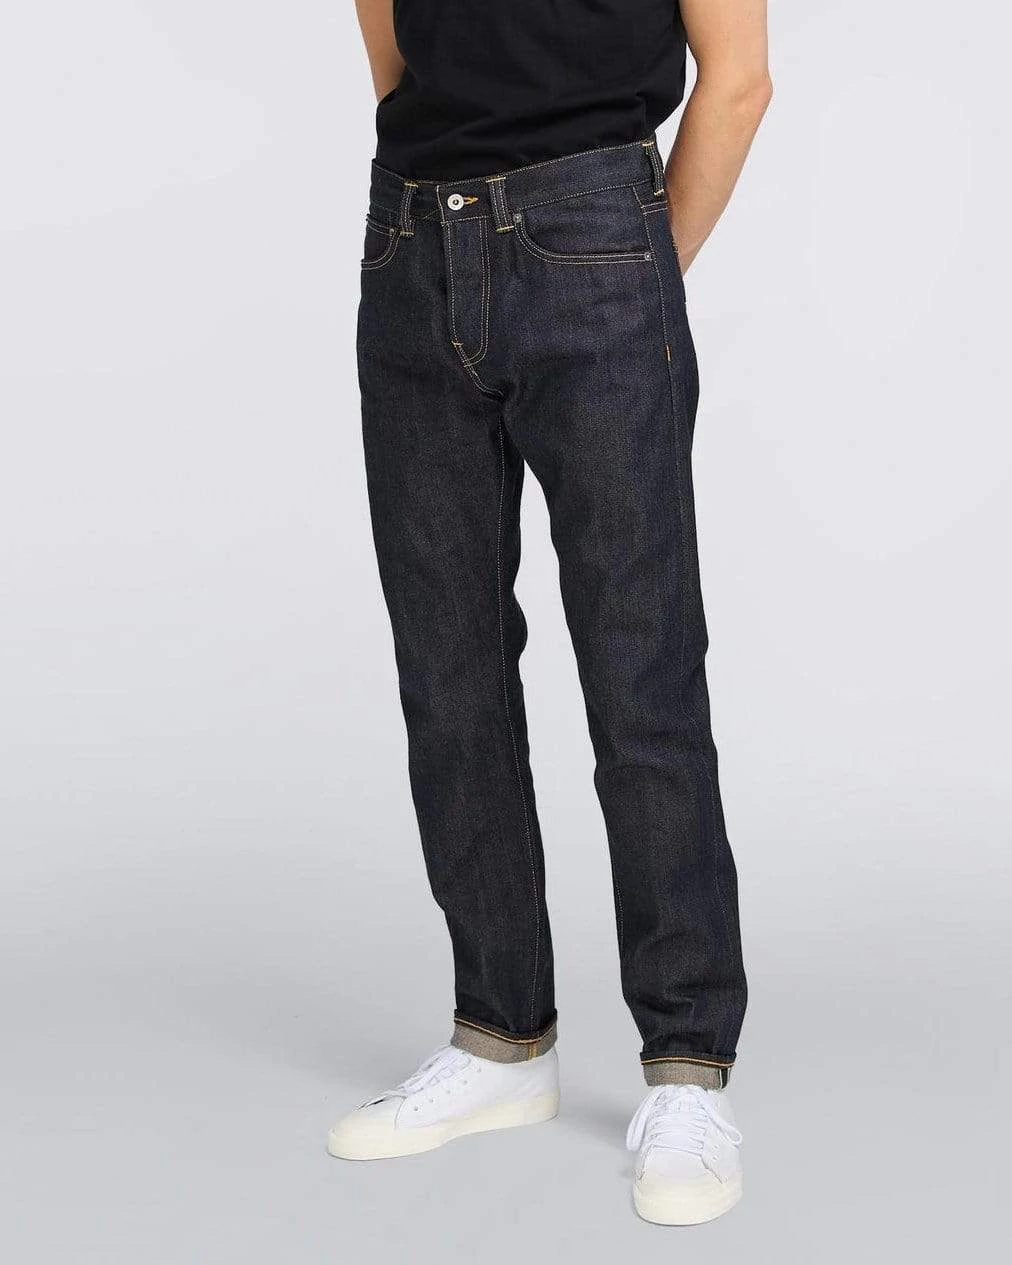 EDWIN ED ONE SLIM TAPERED FIT RED LISTED SELVAGE MENS JEANS 14OZ DENIM UNWASHED